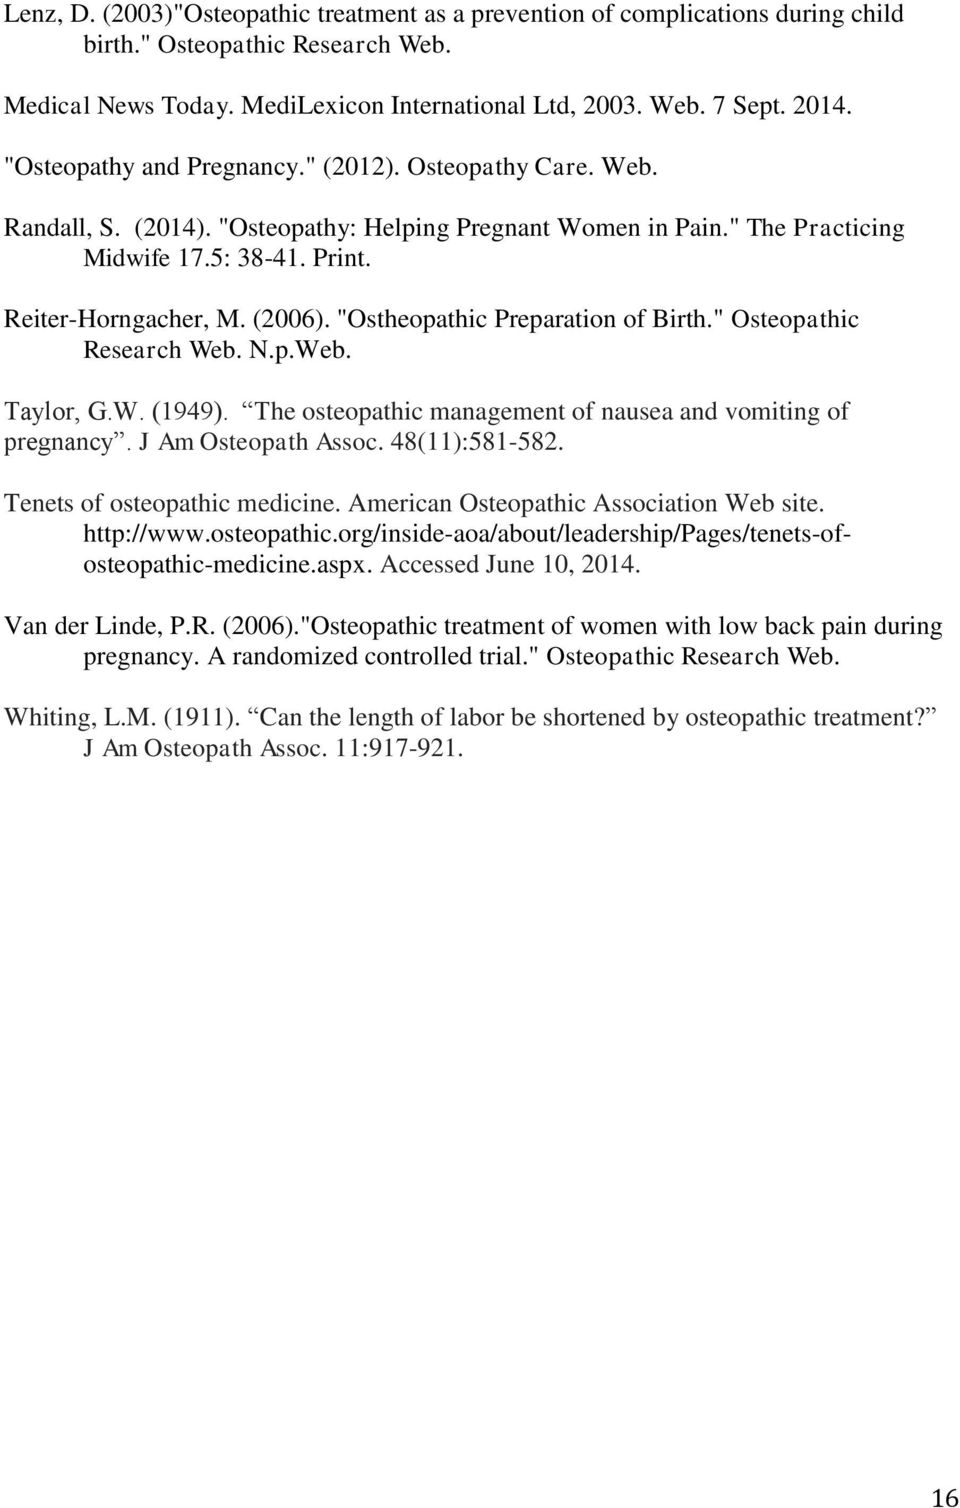 Osteopractic after childbirth: the rapid recovery of a young mother 22